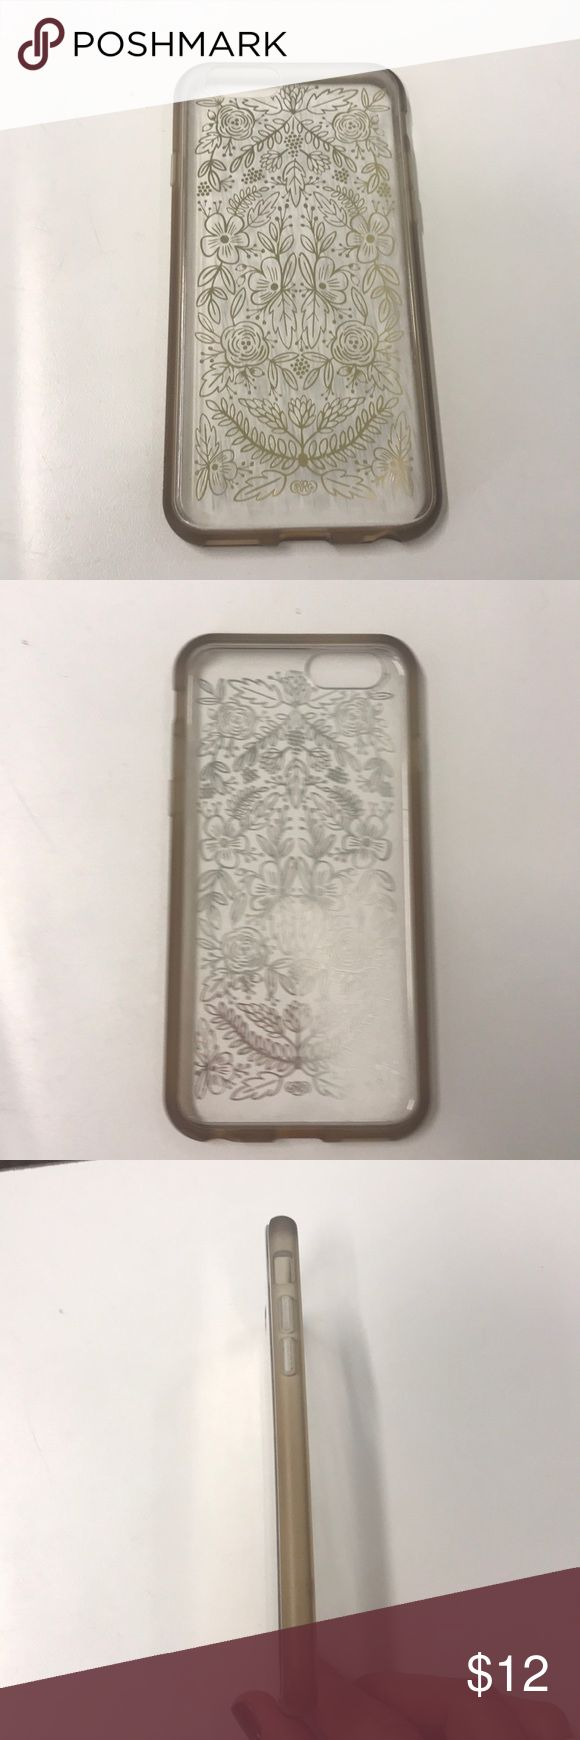 Rifle Paper Company IPhone 6 Clear Case EUC! Only used briefly because it was the wrong size for my daughter's phone. Clear with gold floral lace pattern and gold sides. Accessories Phone Cases